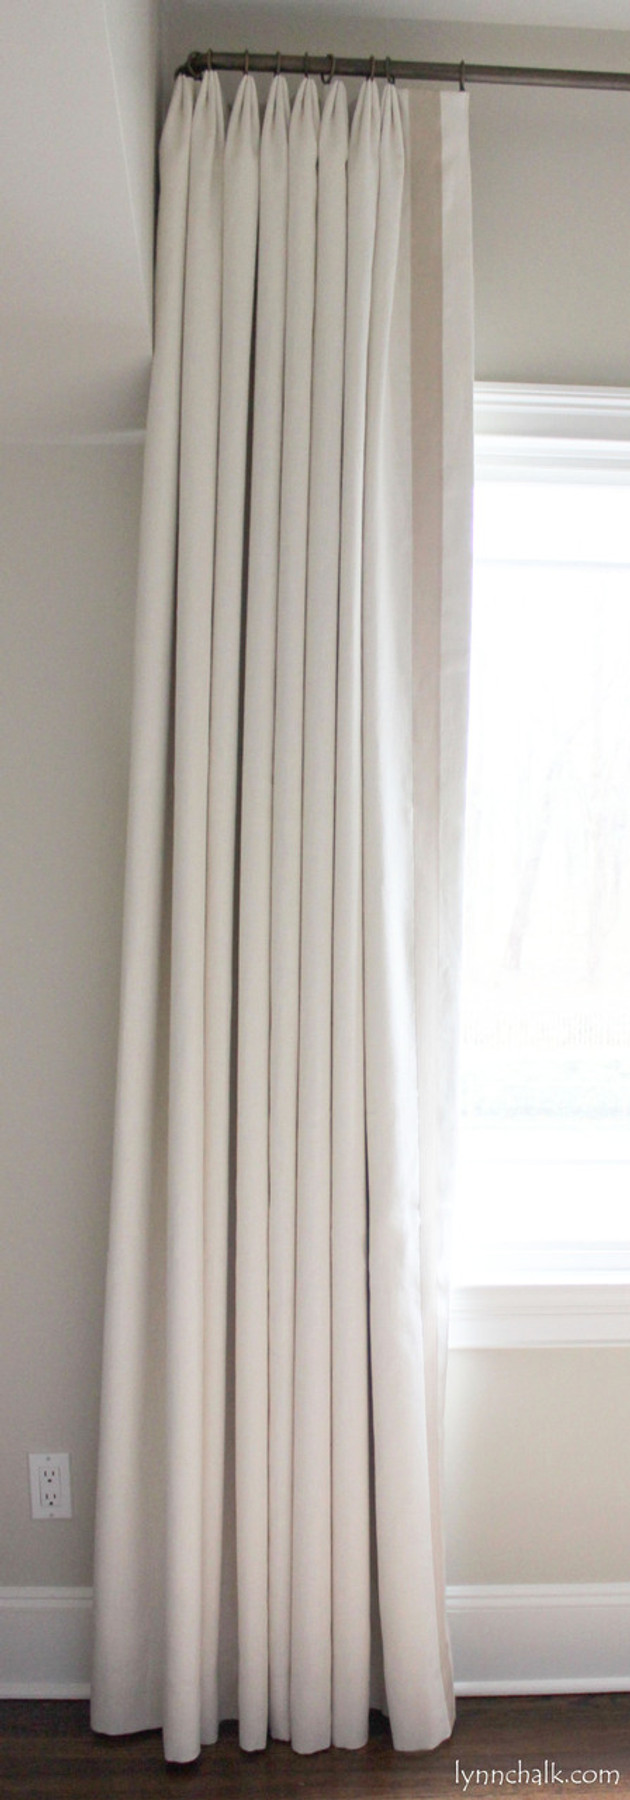 Fan Pleated Drapes in Kravet Dublin Linen (Comes in Over 50 Beautiful Colors)